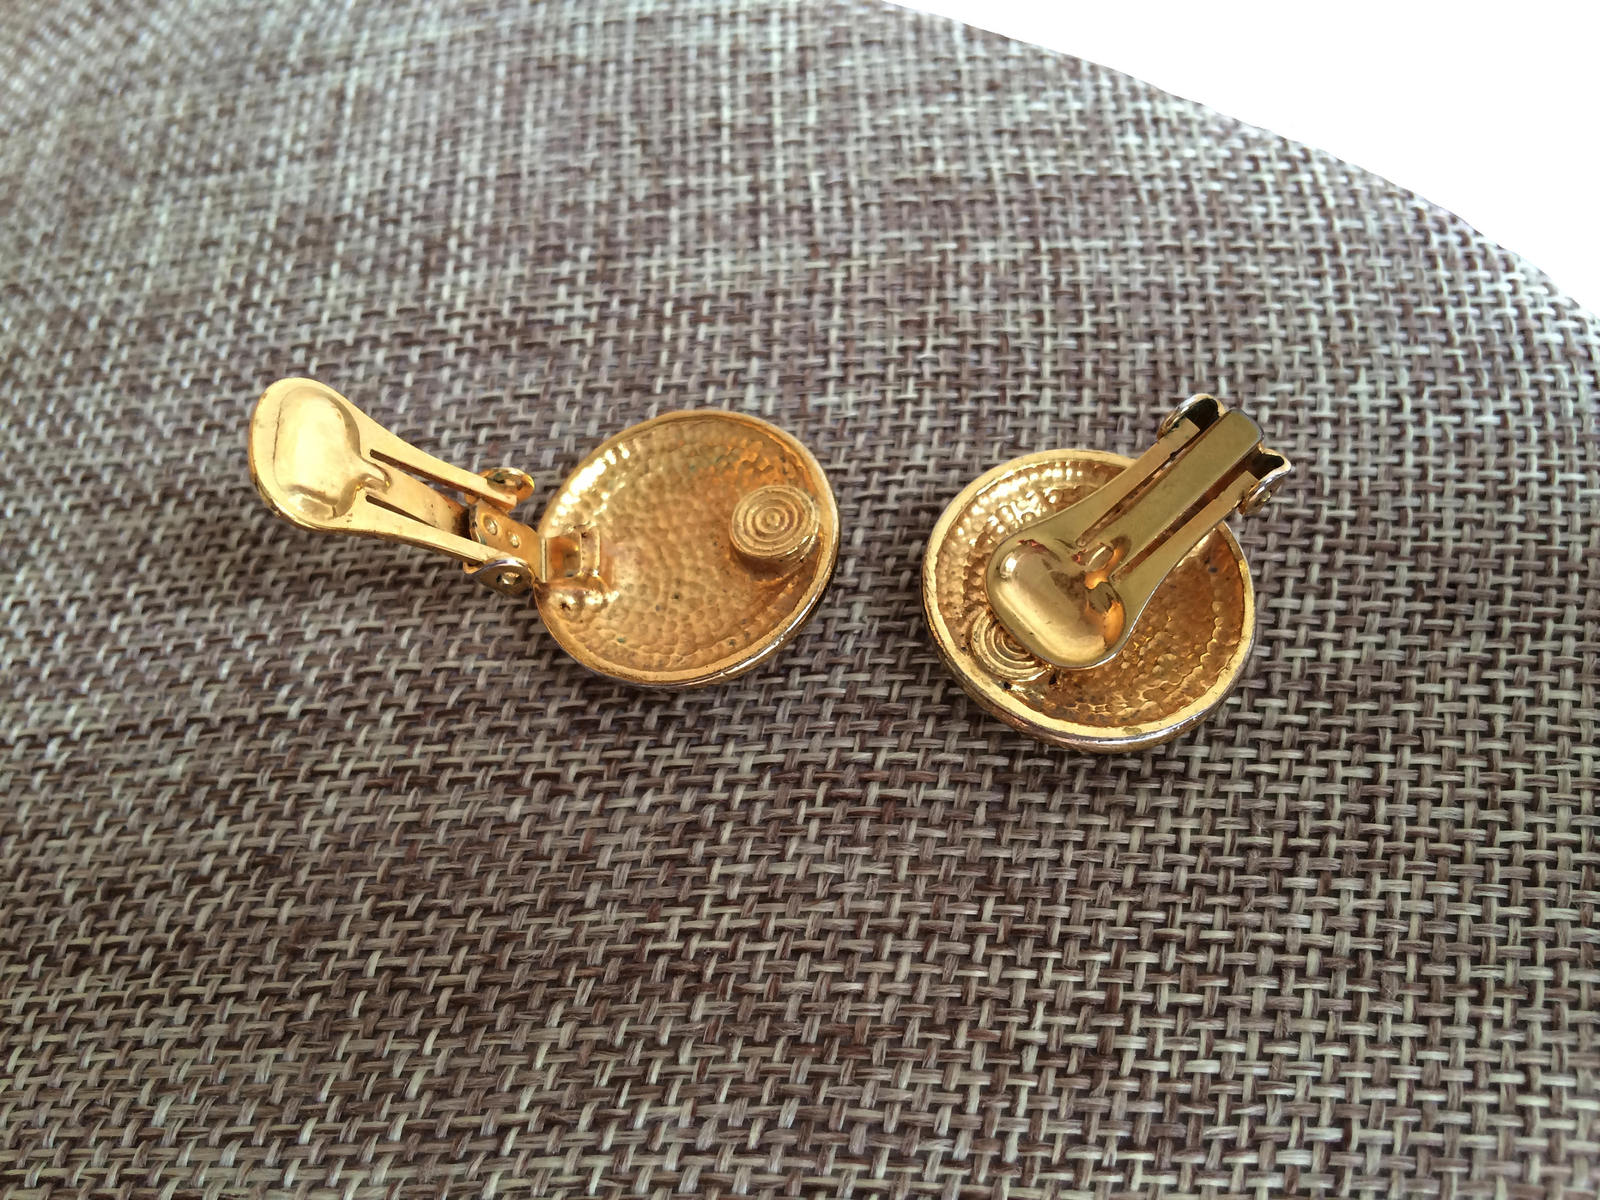 Vintage Golden Anchor Rope & Wreath Nautical Button Clip On, summer jewelry, bea